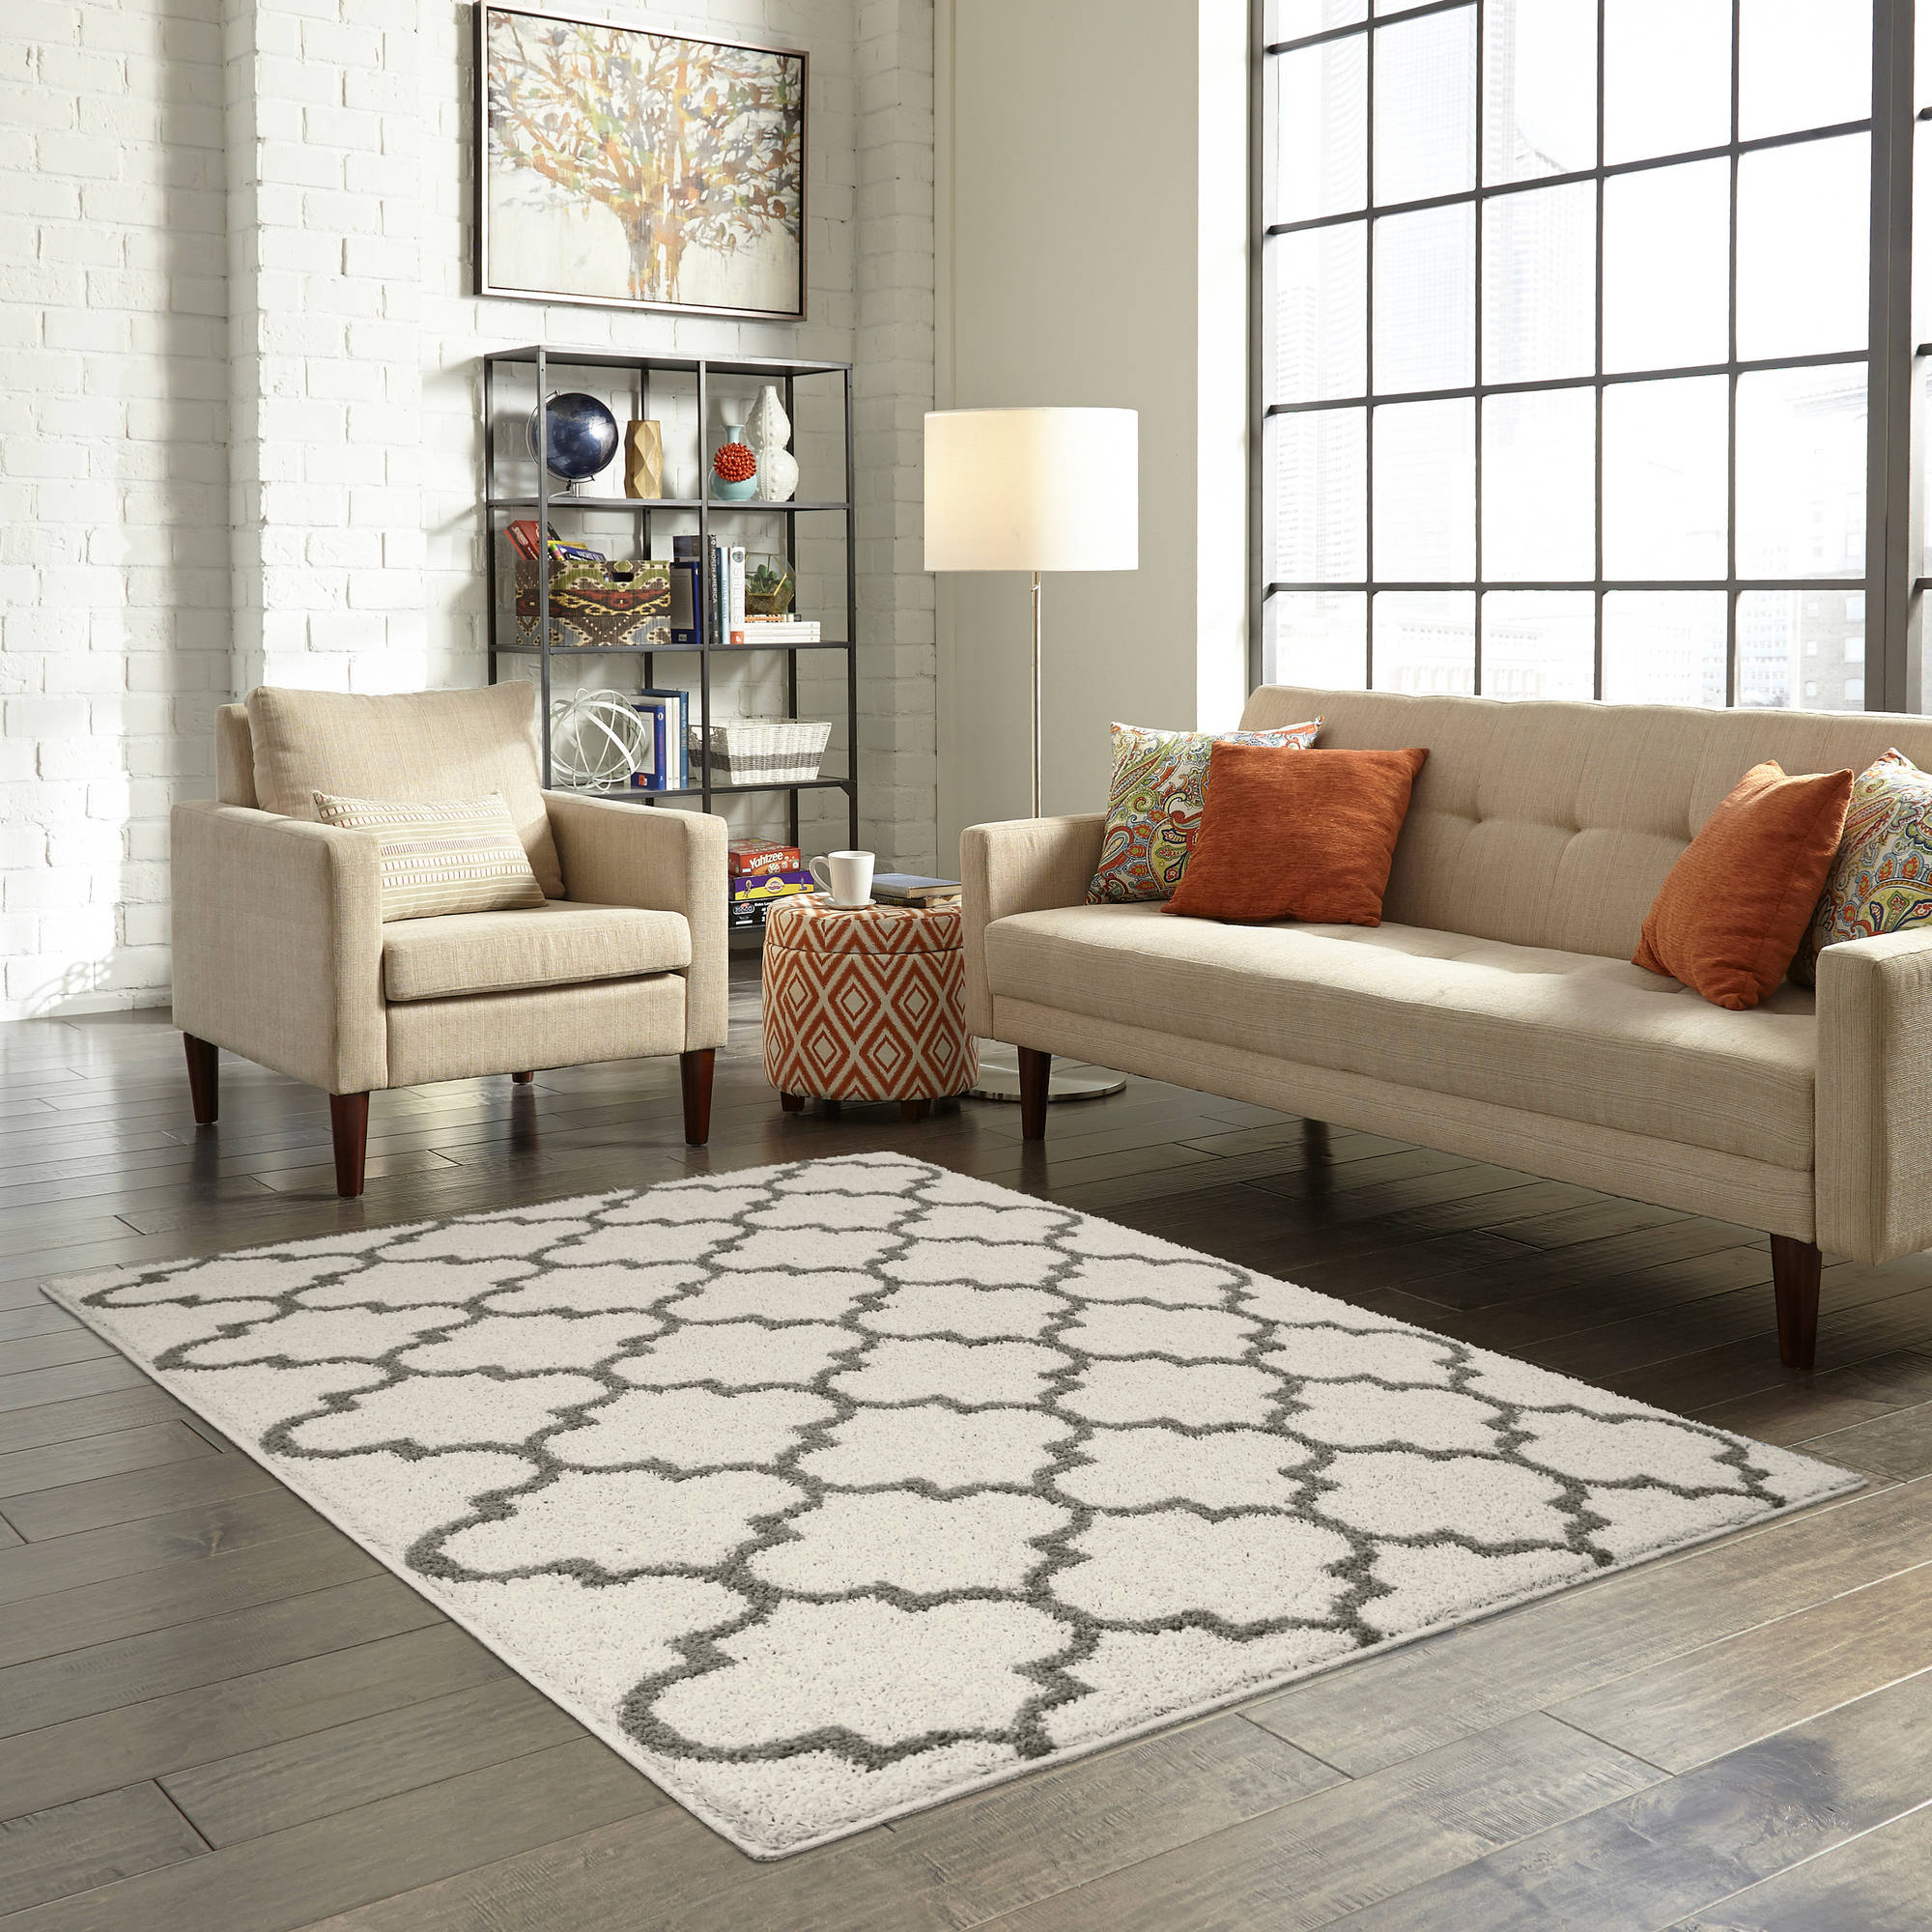 com rug rugs and kitchen soft amazon plush dp solid easy area cozy shag